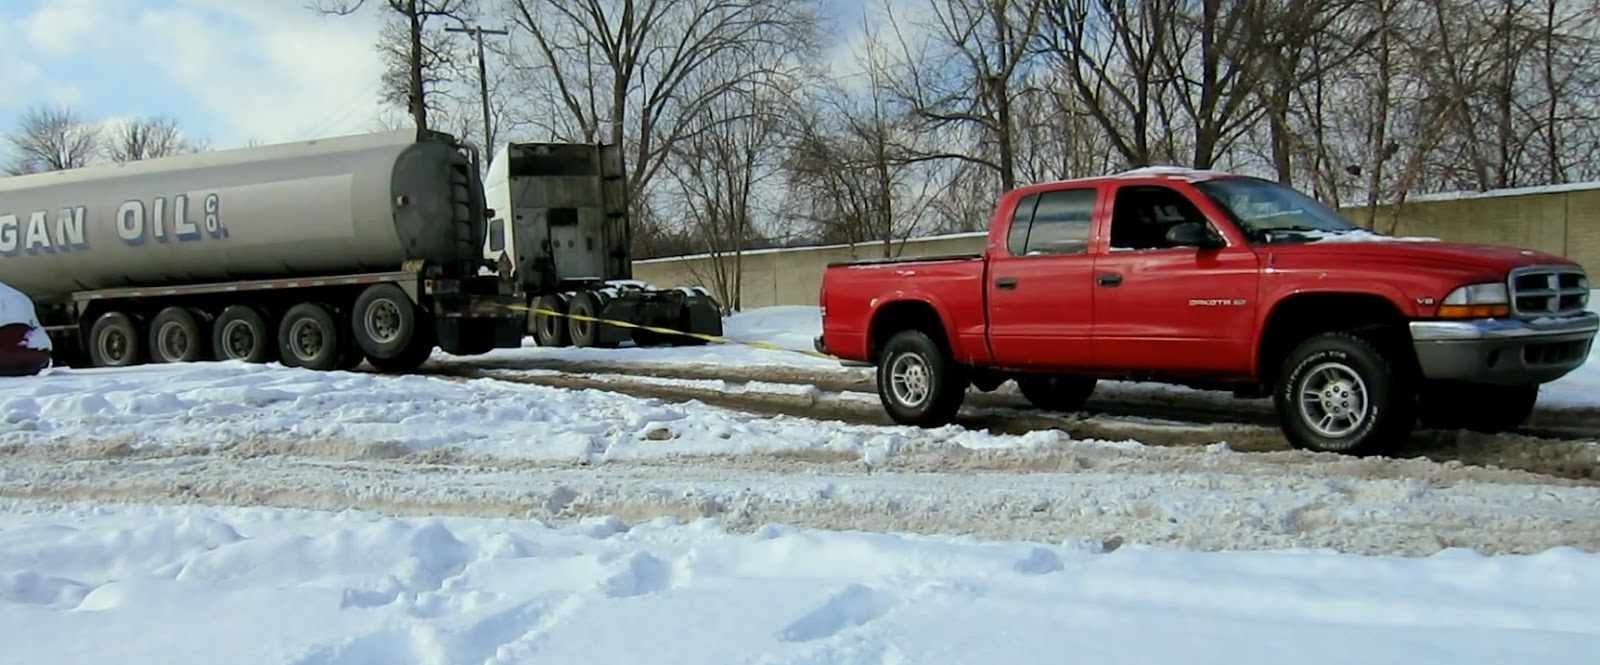 4.7 V8 Dodge Dakota Rescures Semi Truck from Deep Snow